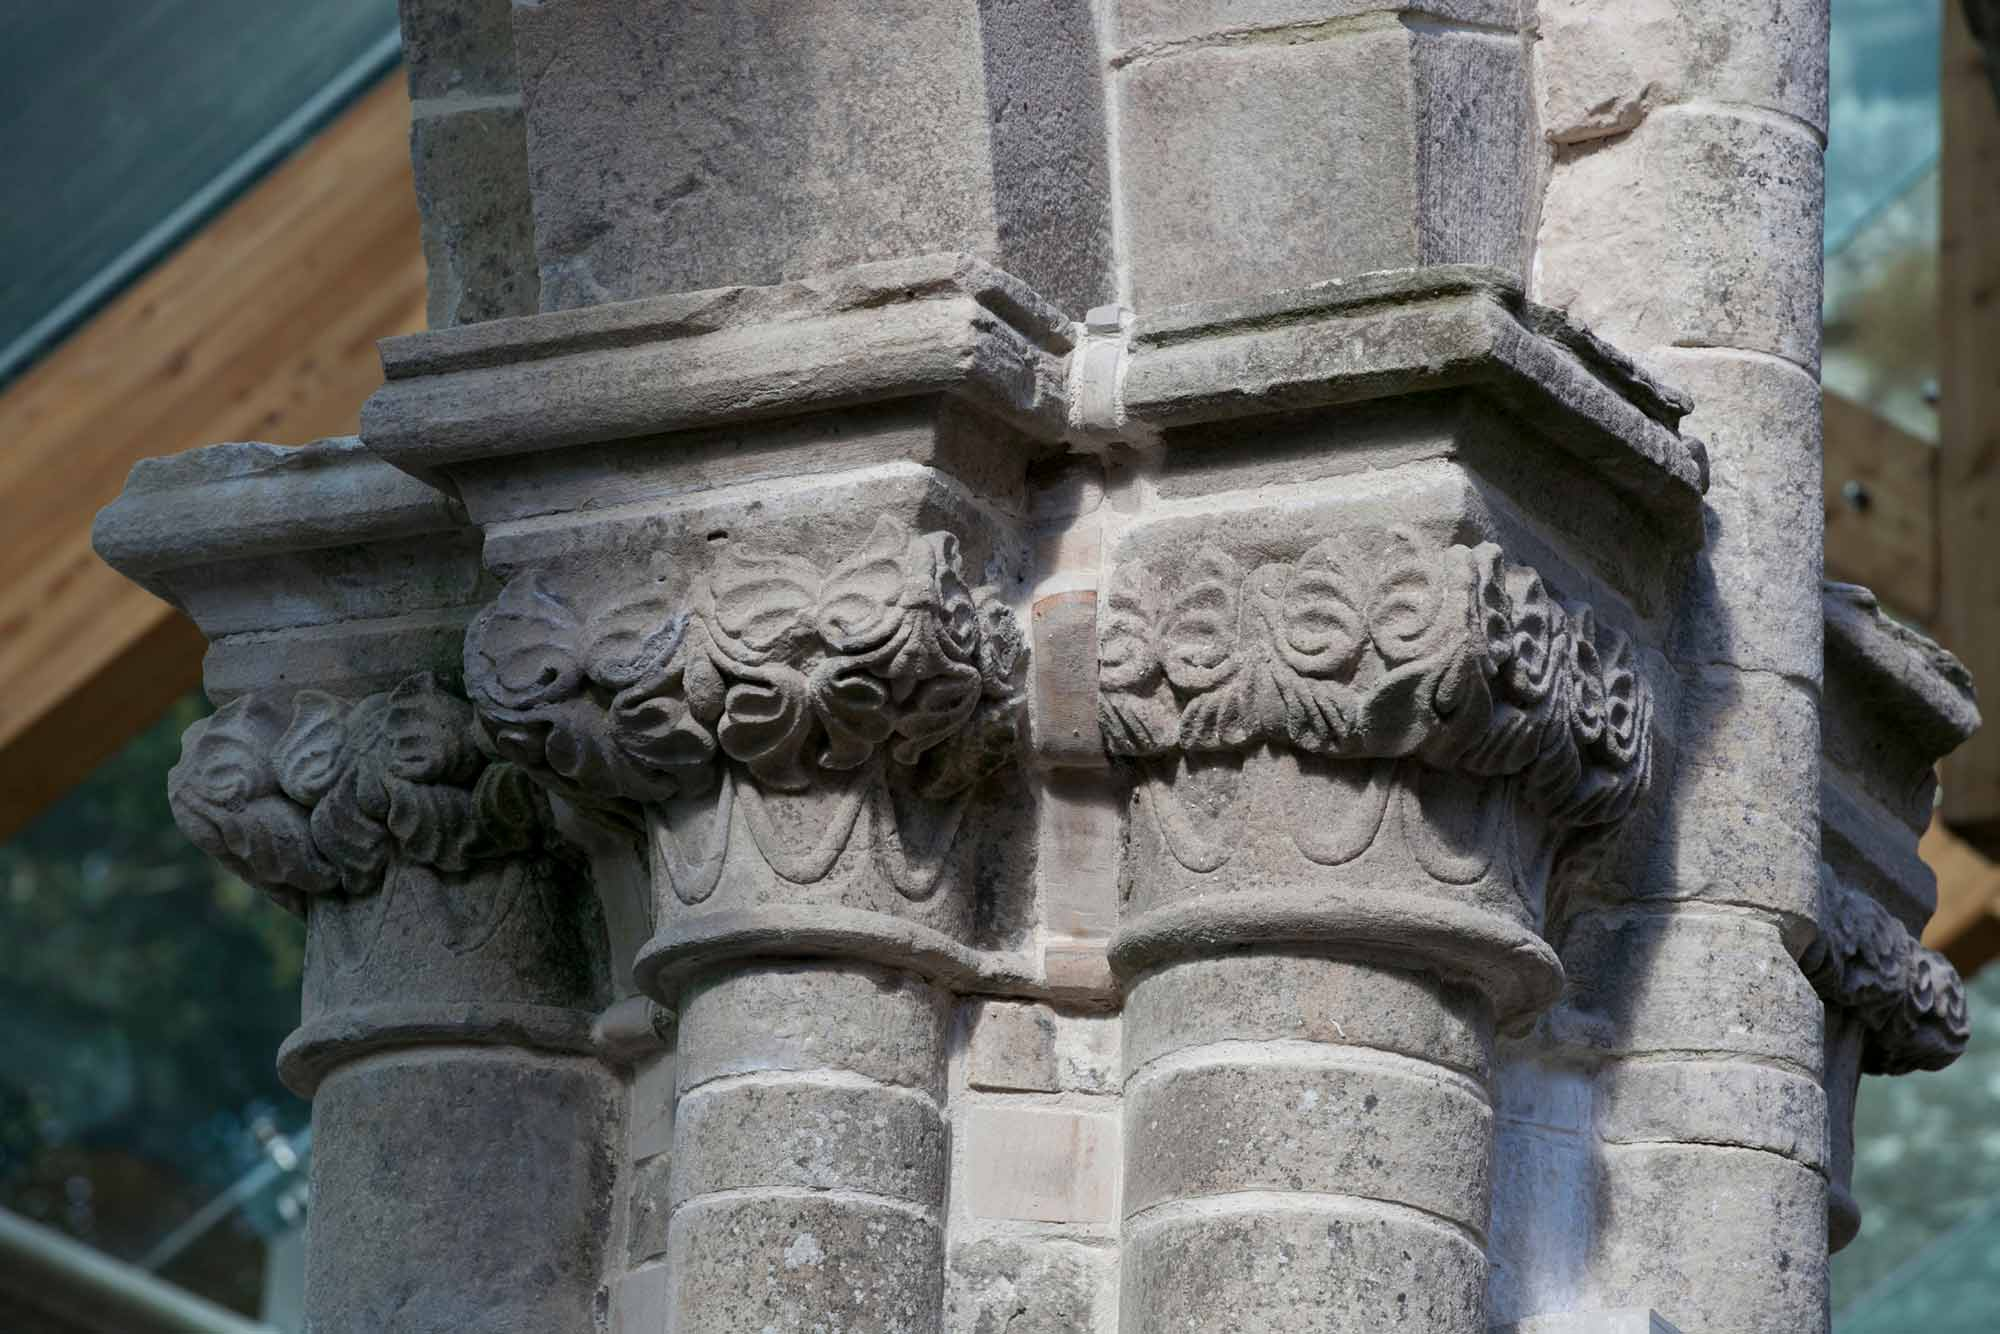 Pier capital, south arcade of the nave